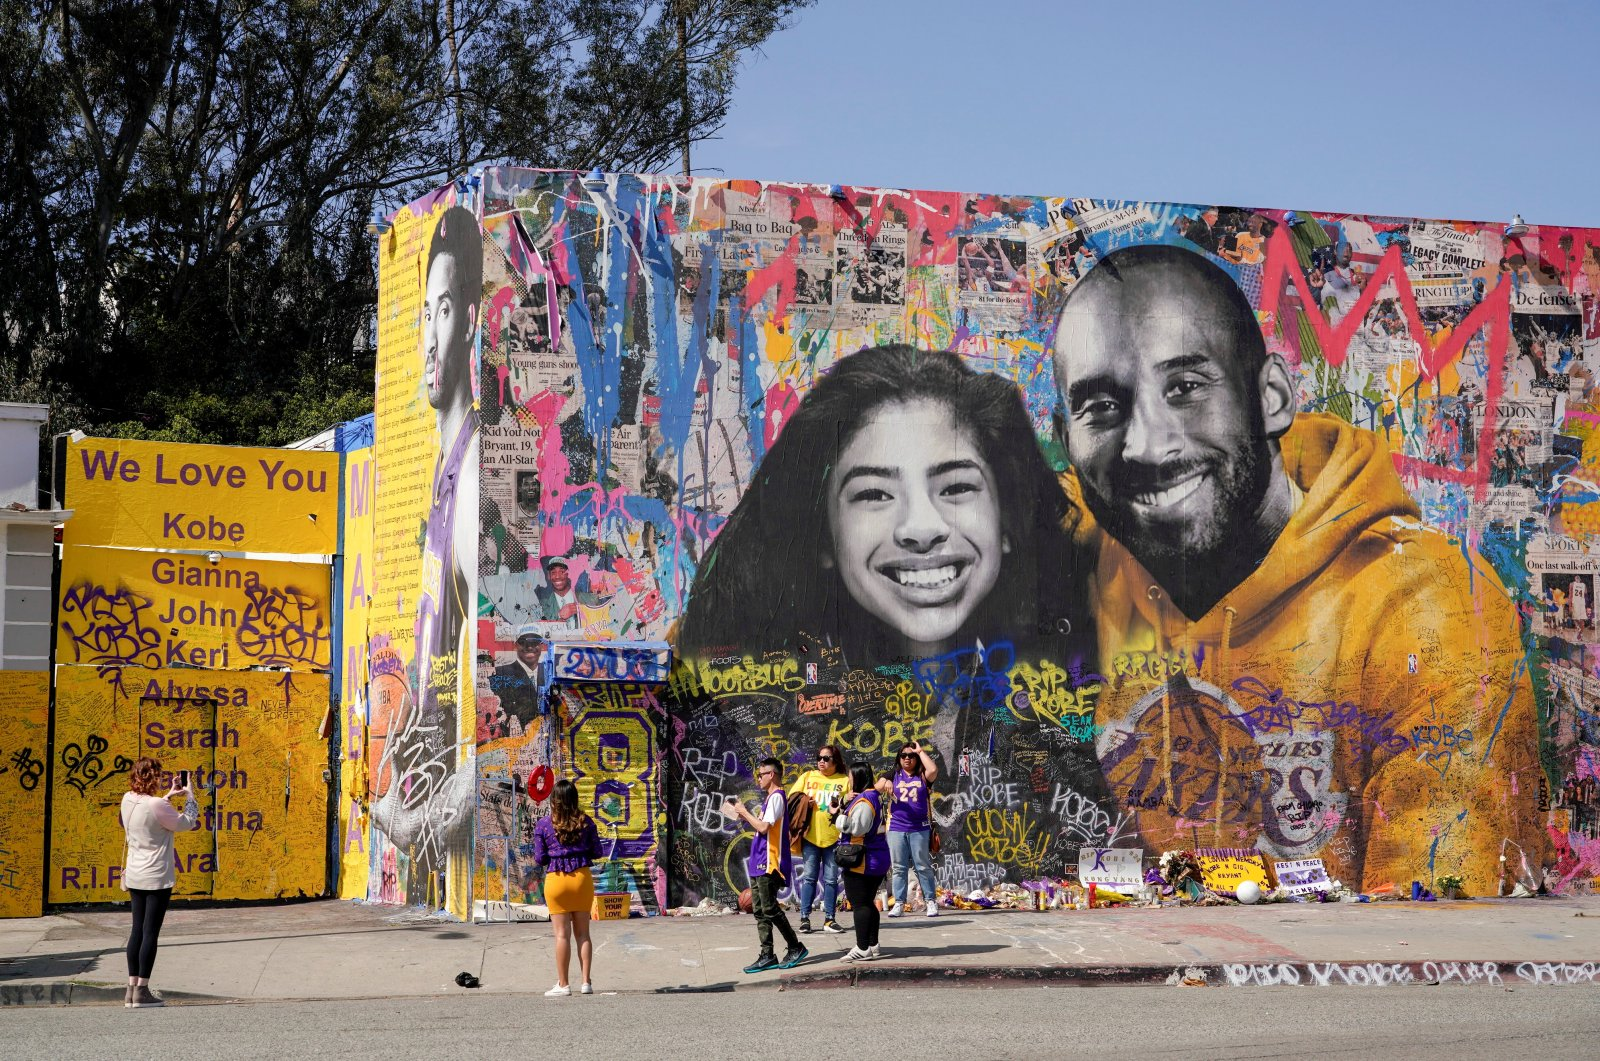 Fans gather around a mural of late NBA great Kobe Bryant and his daughter Gianna Bryant during a public memorial for them and seven others killed in a helicopter crash, at the Staples Center in Los Angeles, California, U.S., Feb. 24, 2020. (Reuters Photo)